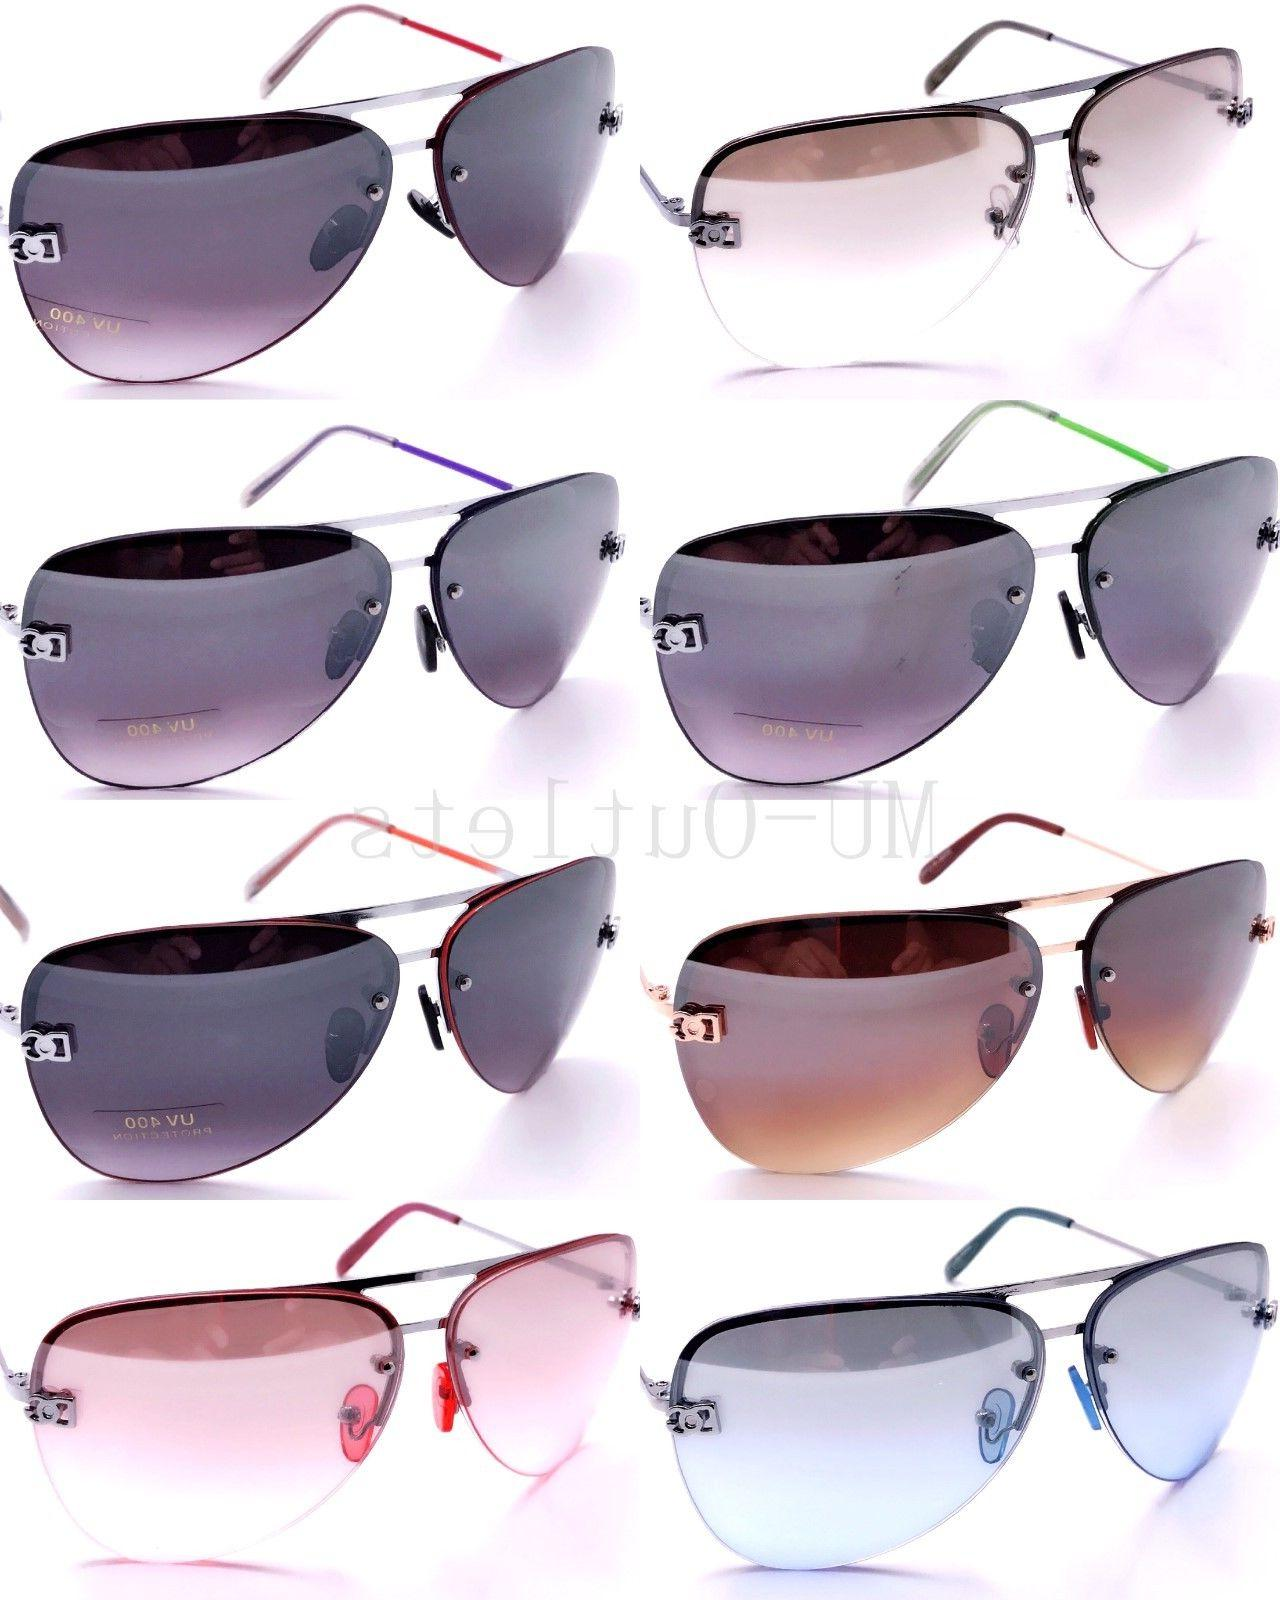 new dg aviator fashion designer sunglasses shades